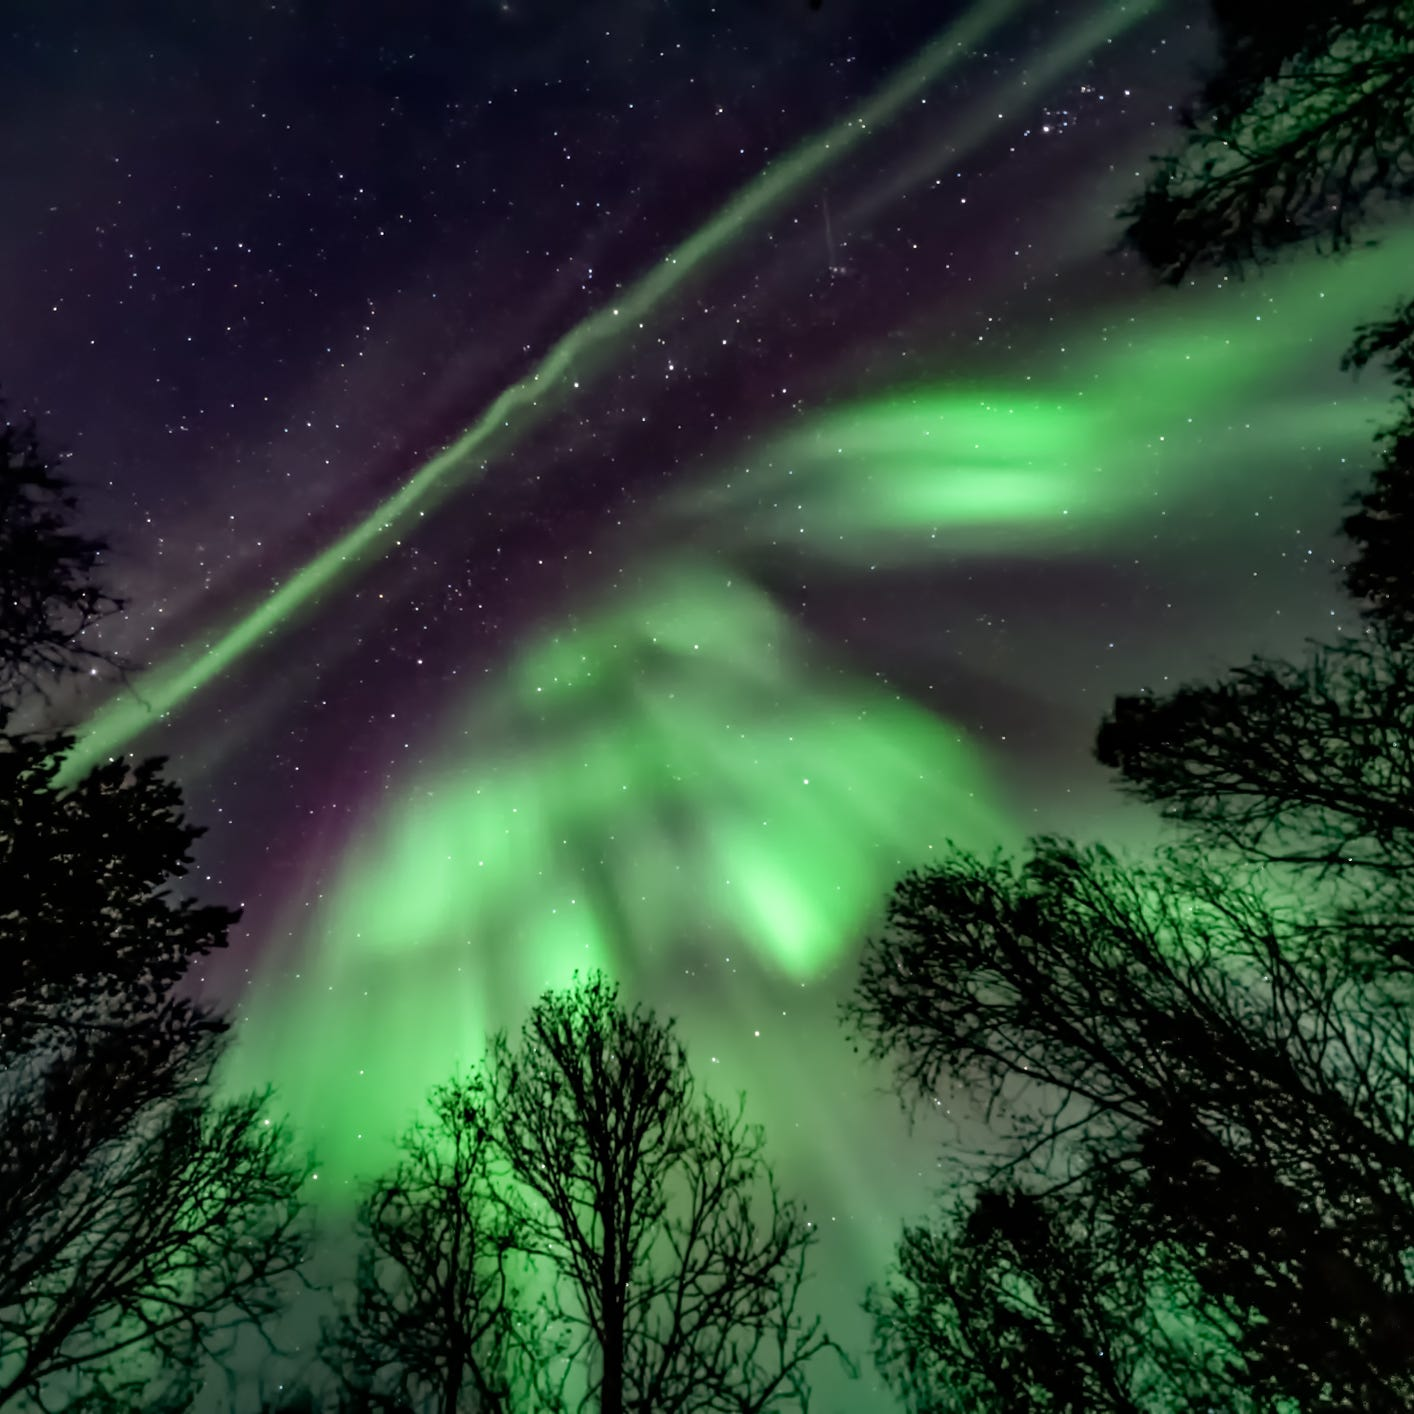 Wisconsin could be in for a northern lights show this week